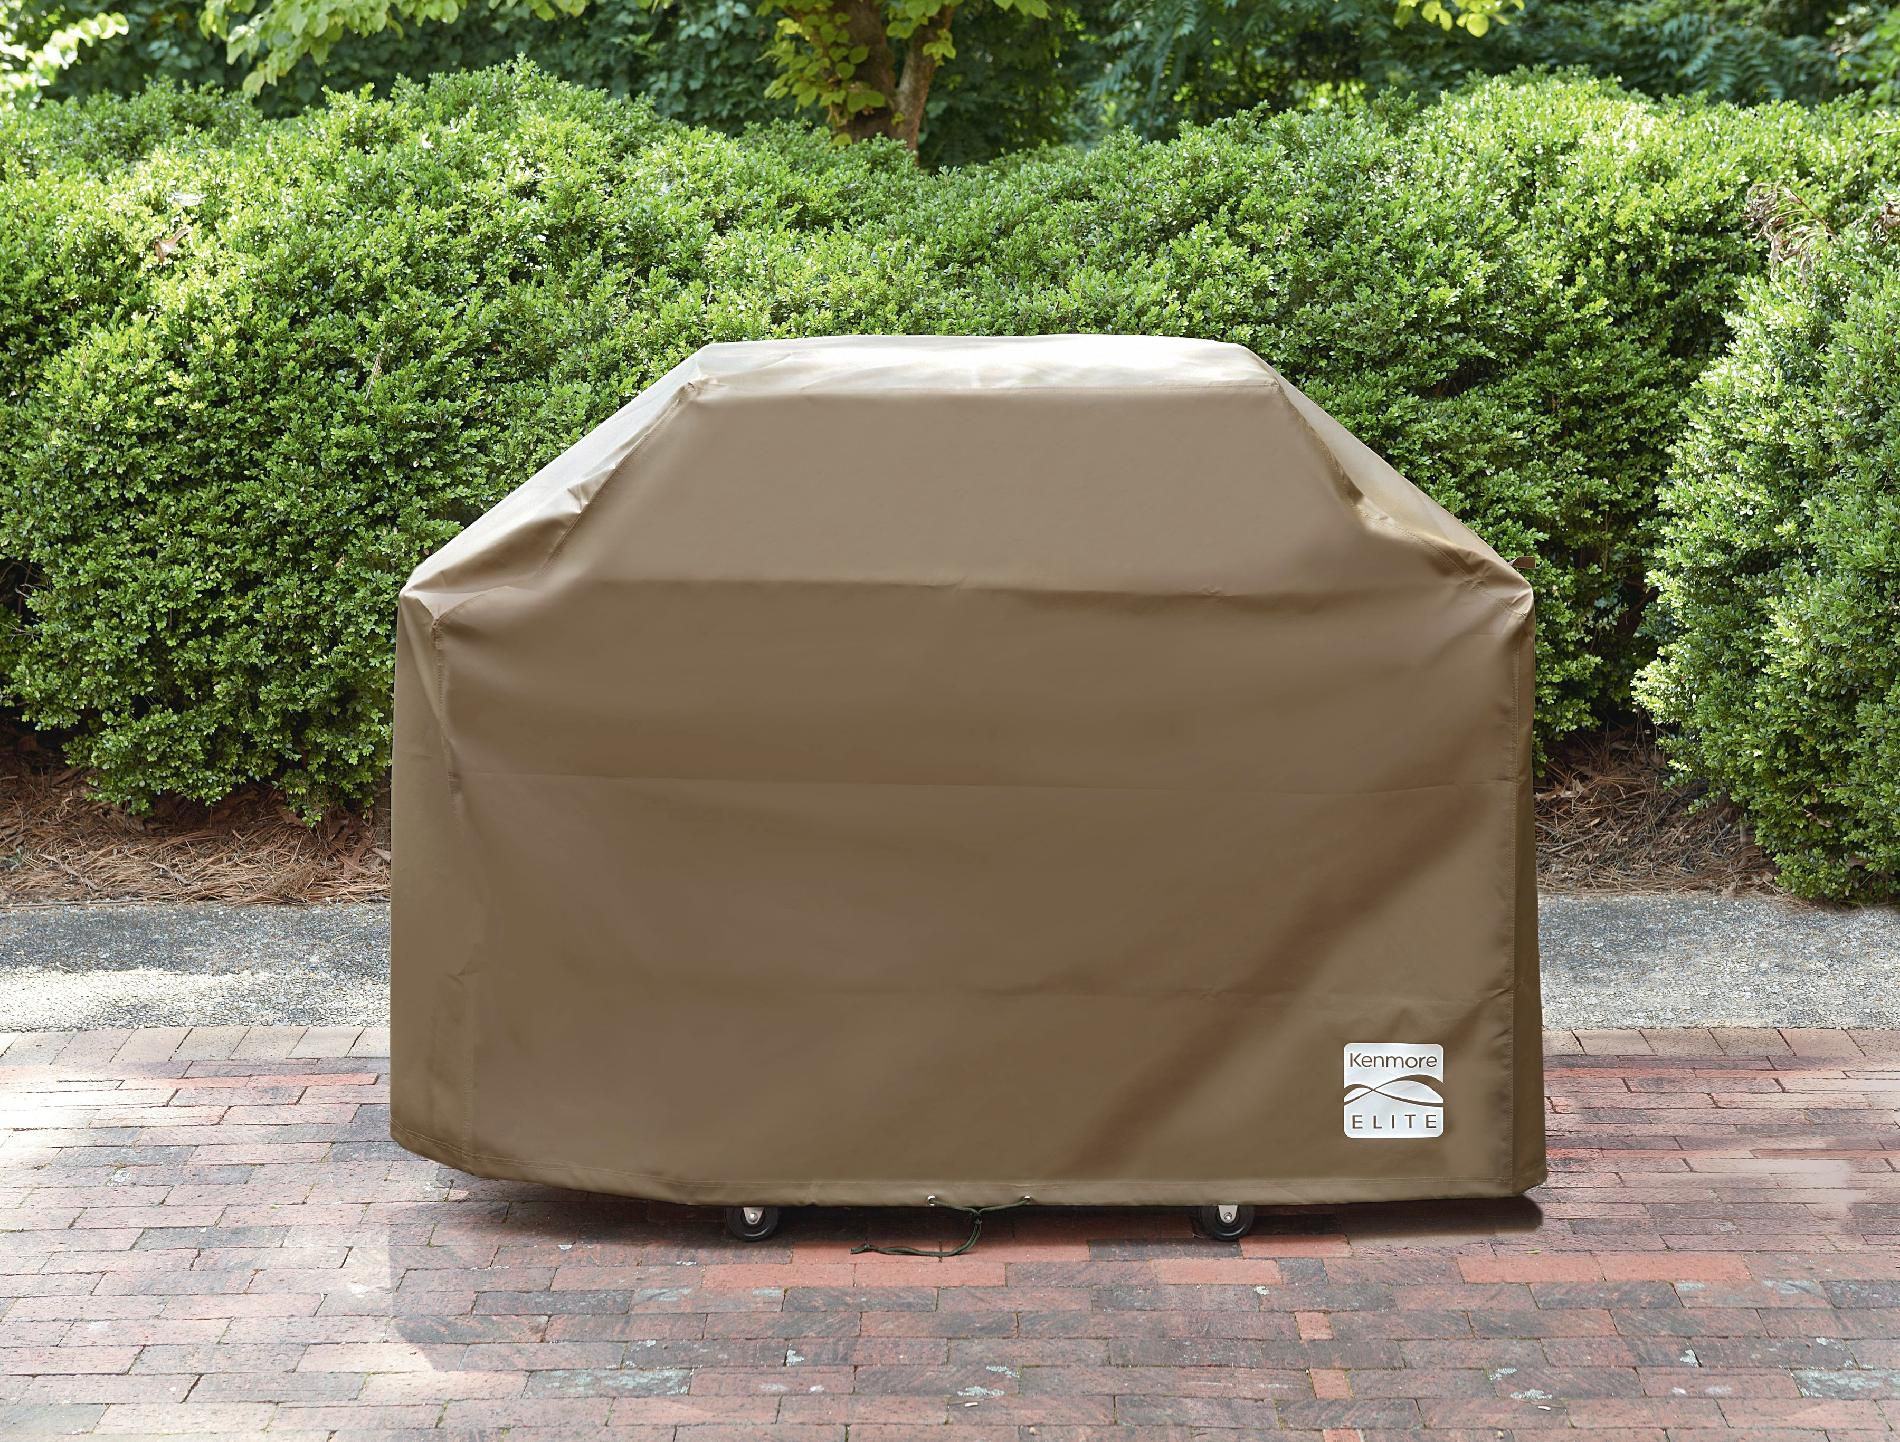 Kenmore Elite  Tan Grill Cover - Fits